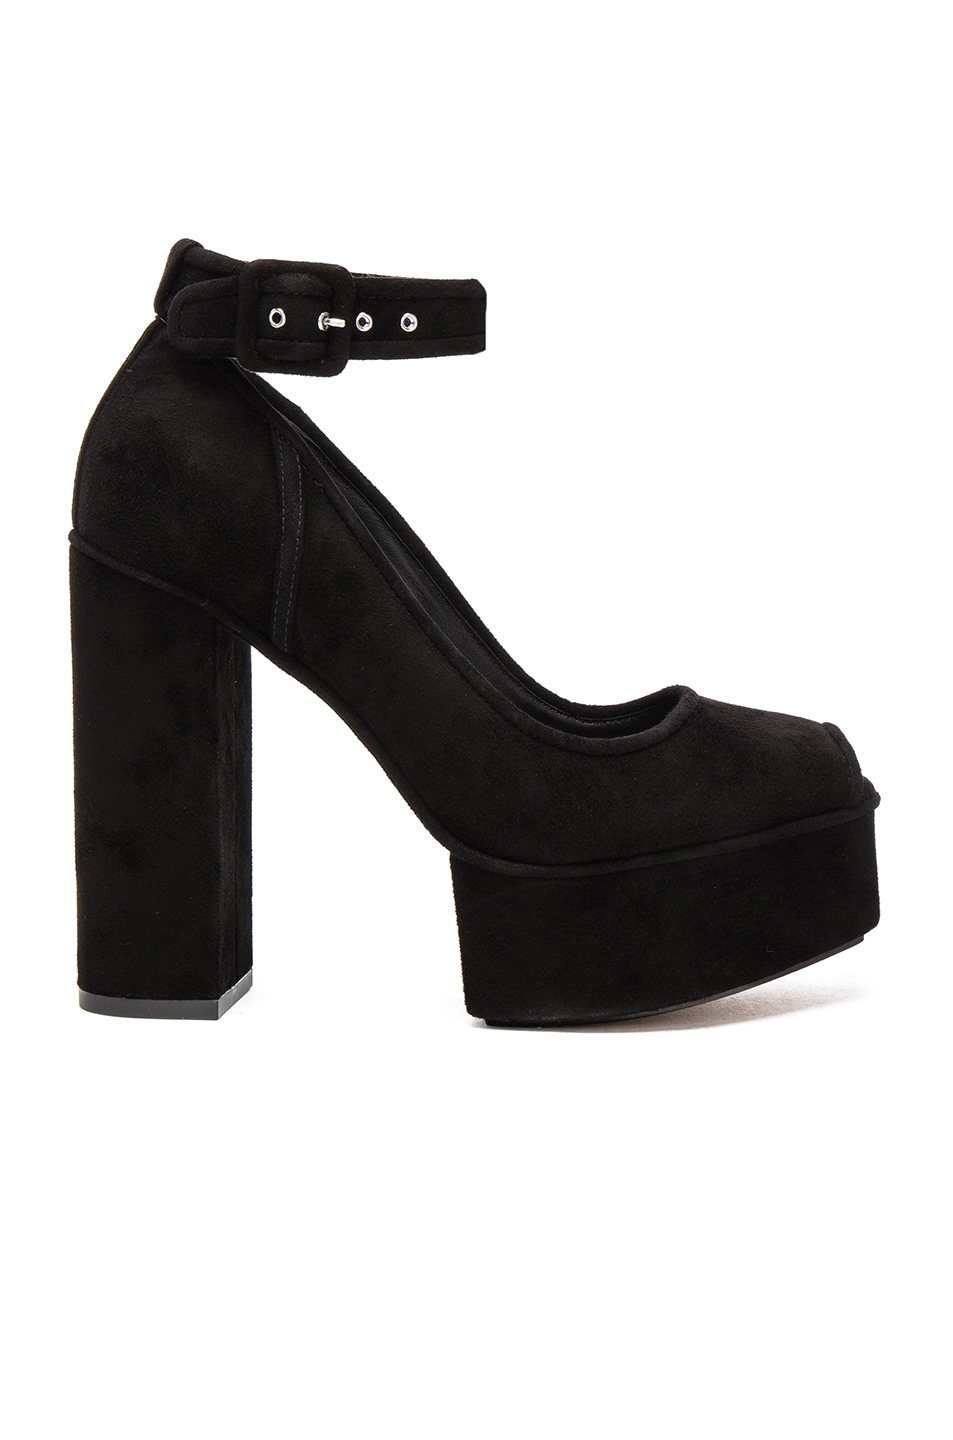 Image 1 of Alexander Wang Suede Aiko Heels in Black